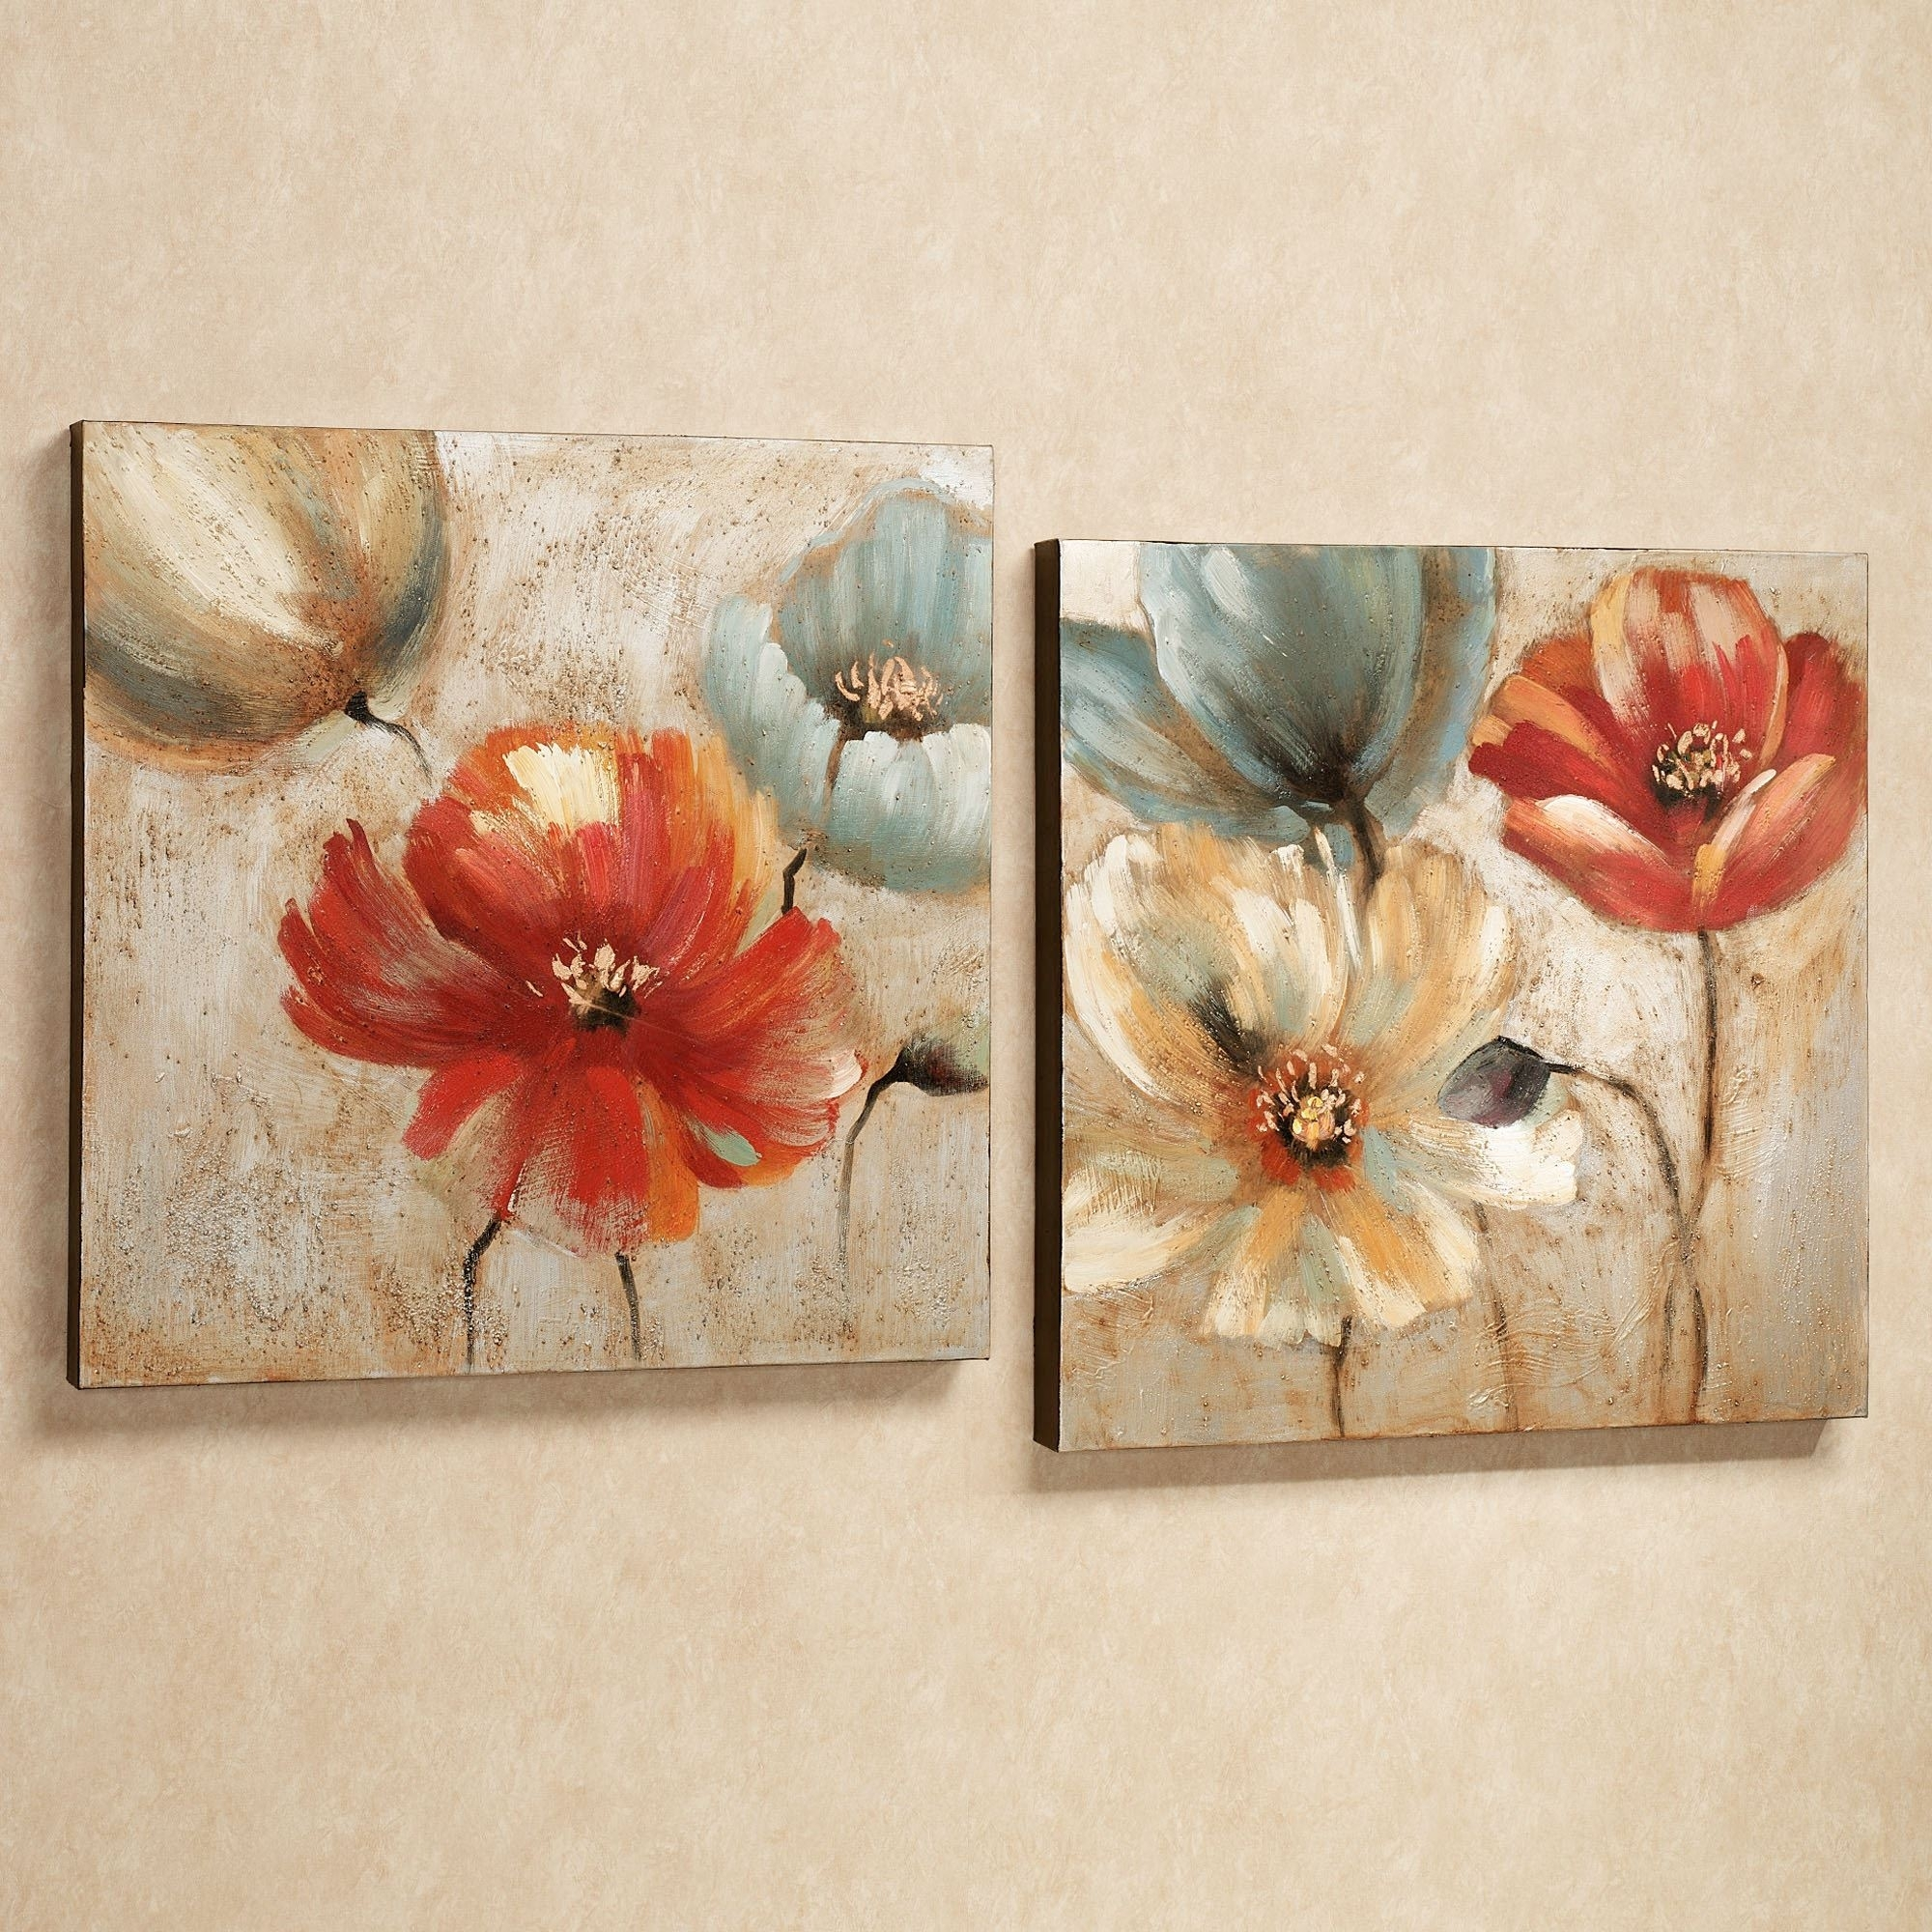 Joyful Garden Floral Canvas Wall Art Set Throughout 2017 Canvas Wall Art Of Flowers (View 3 of 15)